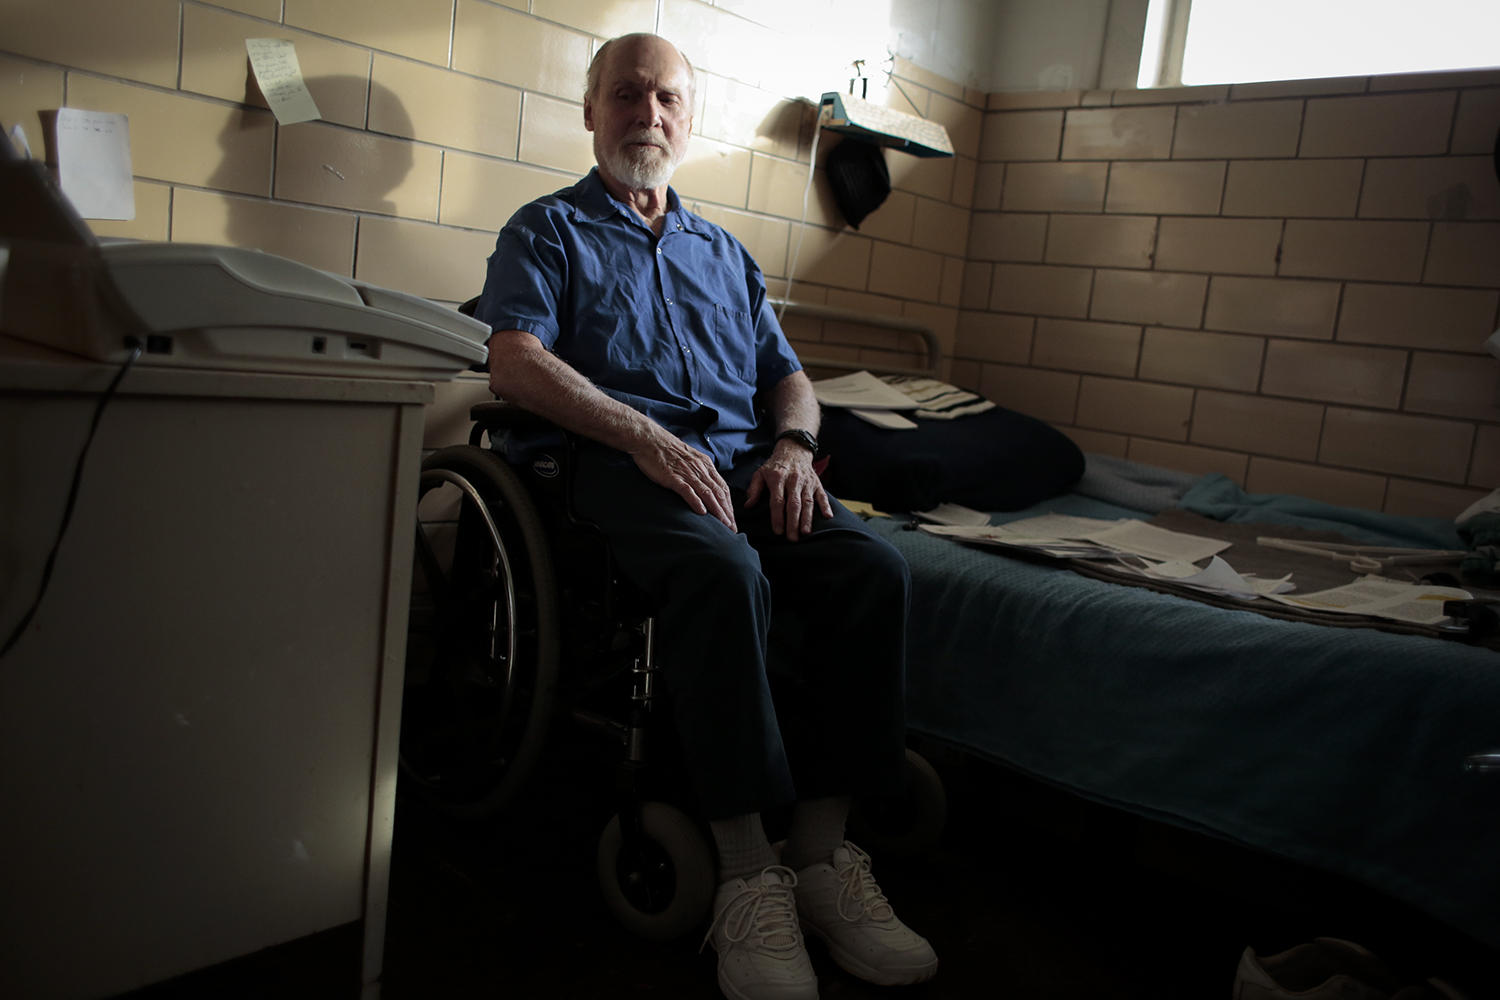 George Hall, 79, sits in his room on Monday, Dec. 1, 2014 at the Lakeland Men's Correctional Facility in Coldwater, MI. Tim Galloway for Al Jazeera America